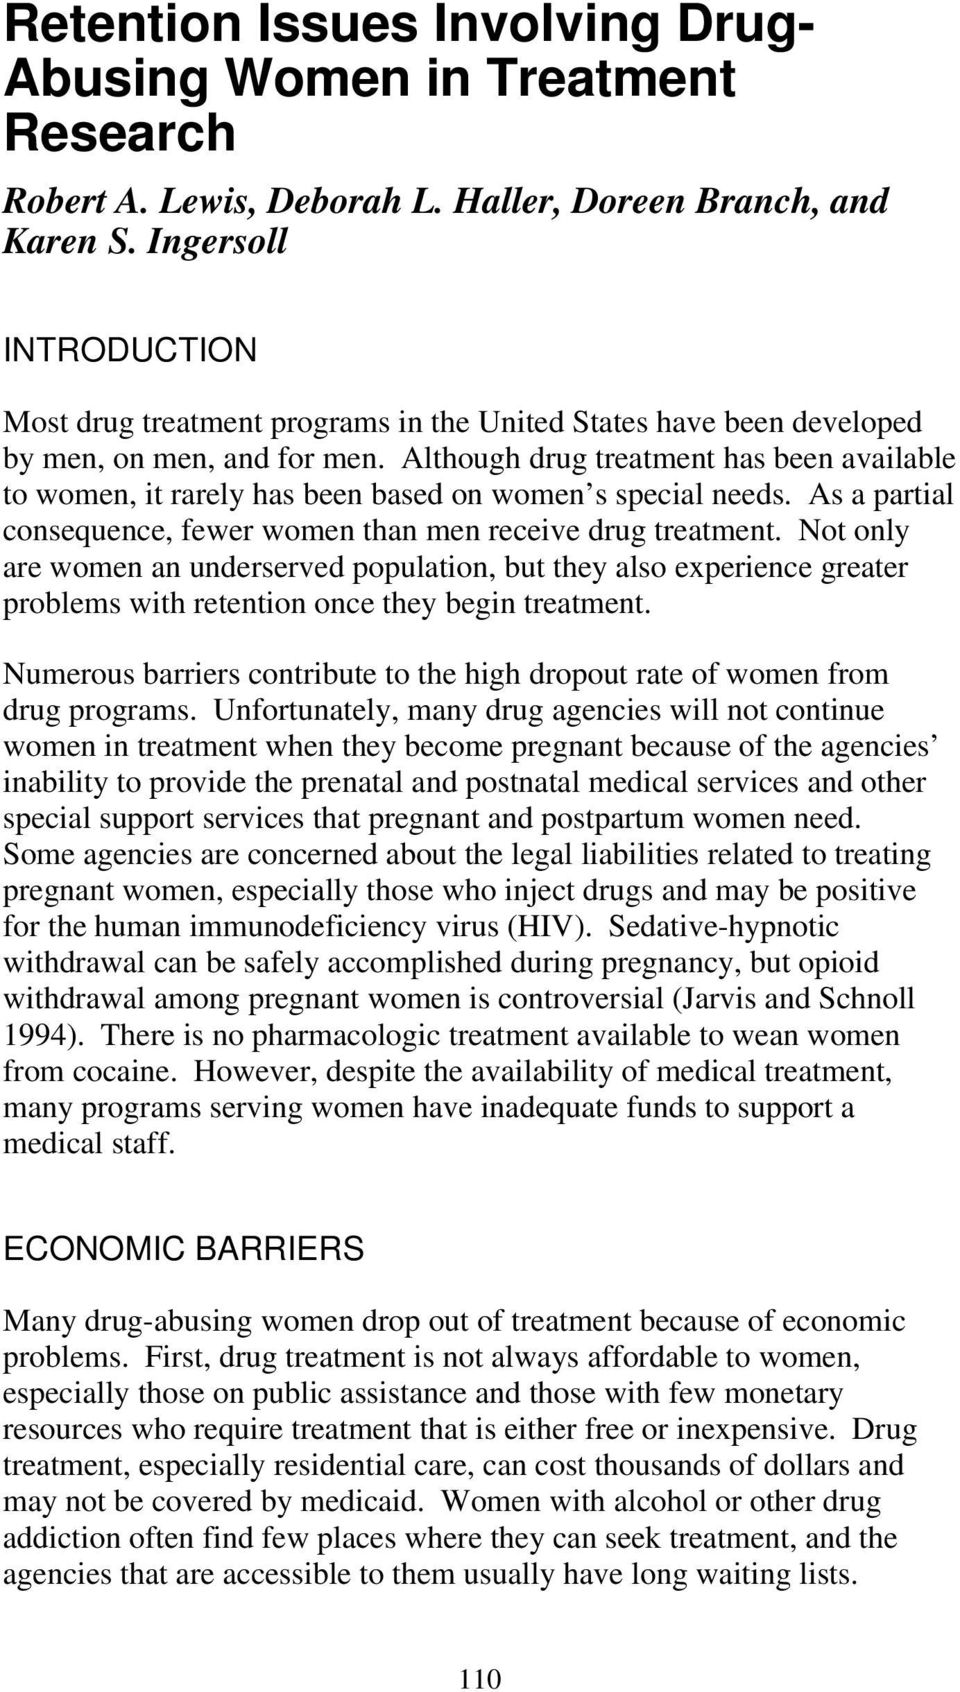 Although drug treatment has been available to women, it rarely has been based on women s special needs. As a partial consequence, fewer women than men receive drug treatment.